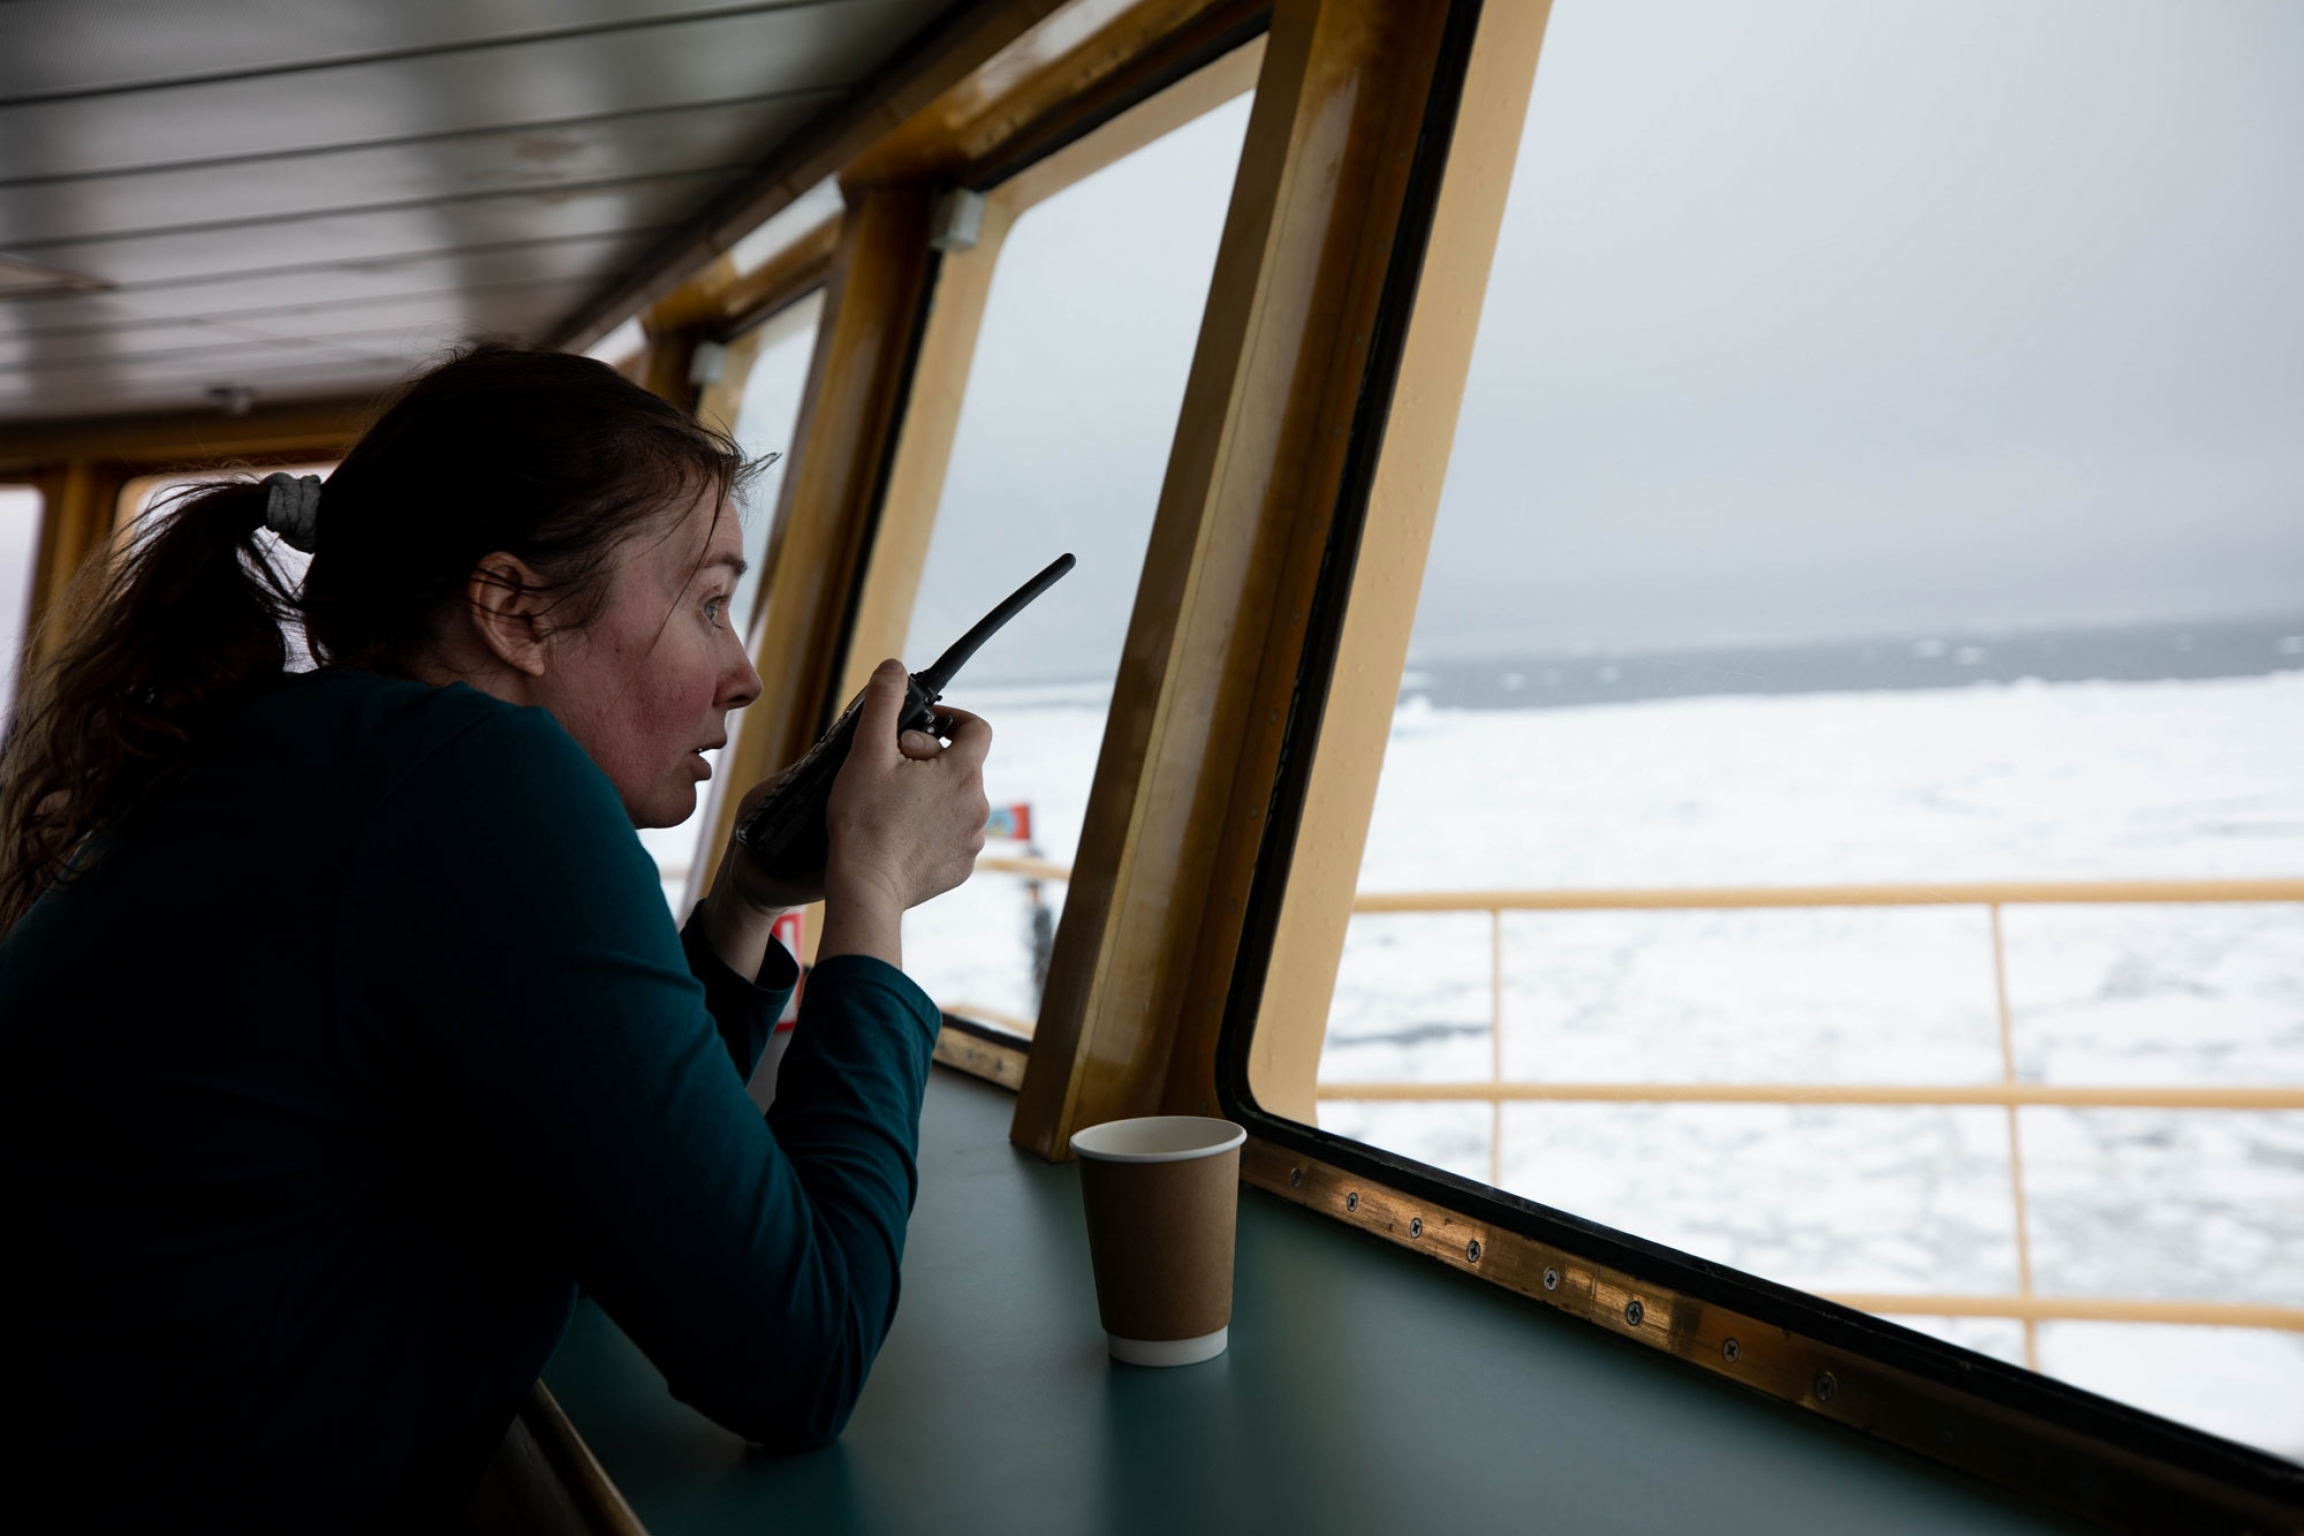 Researcher Anna Wåhlin is shown with a microphone looking out on the ocean.